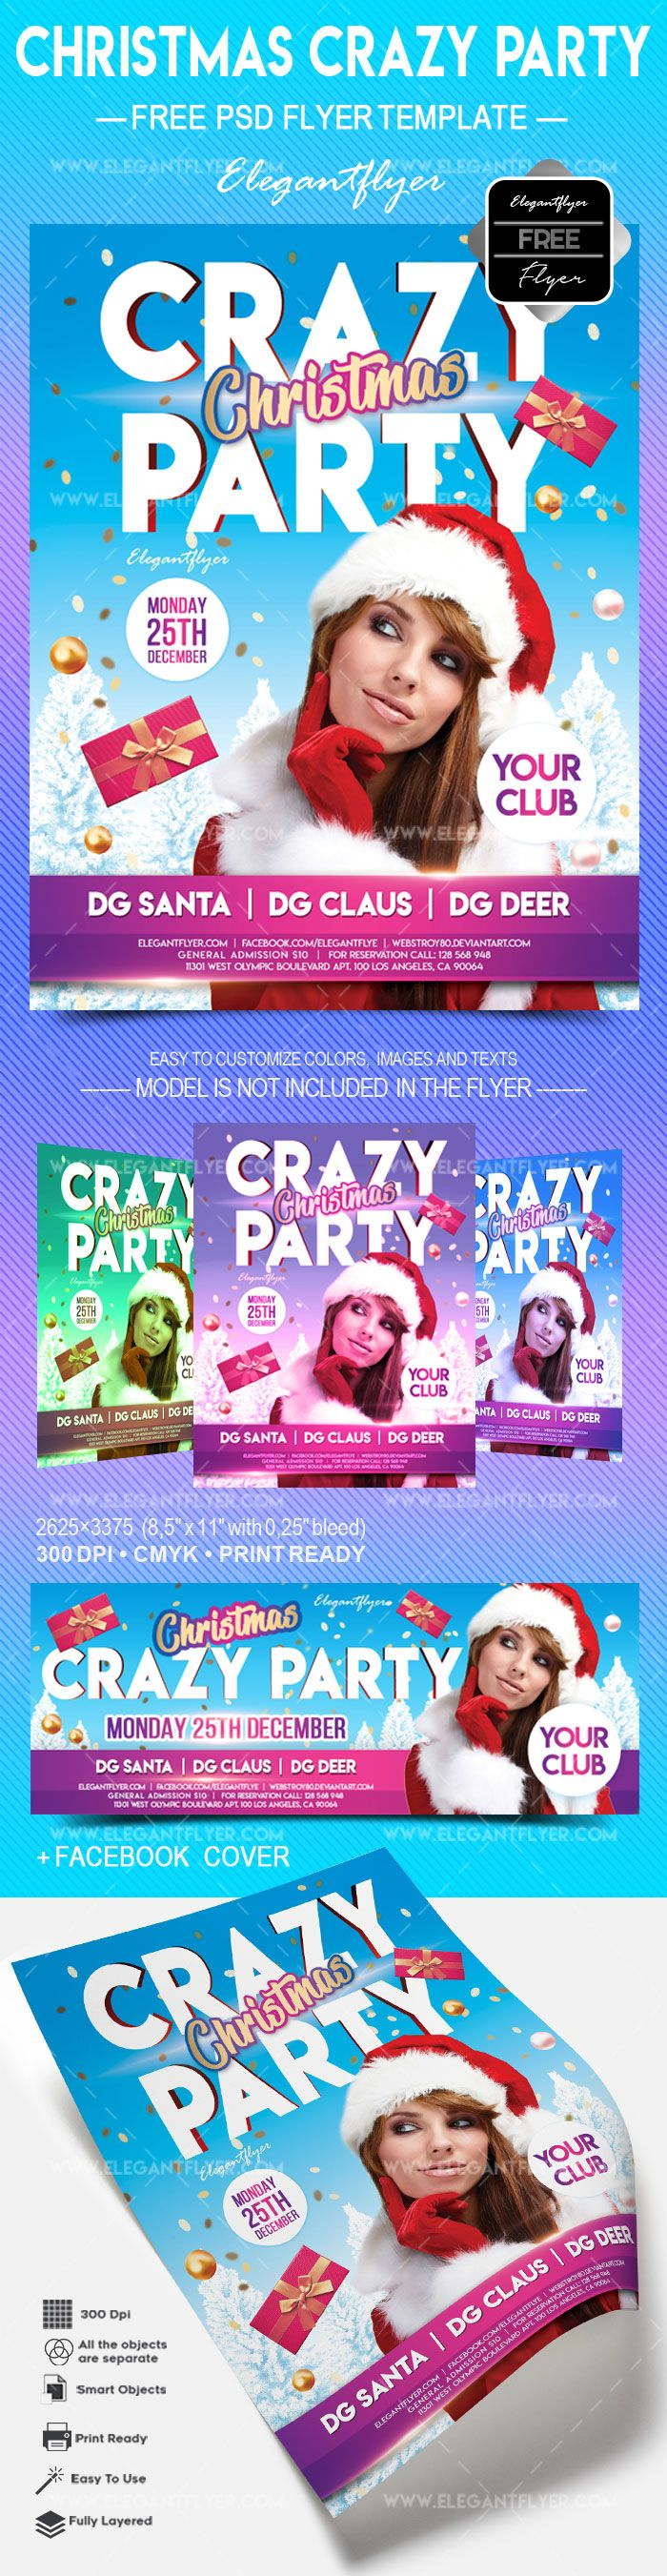 https://www.elegantflyer.com/free-flyers/free-christmas-crazy-party-flyer-psd-template-facebook-cover/